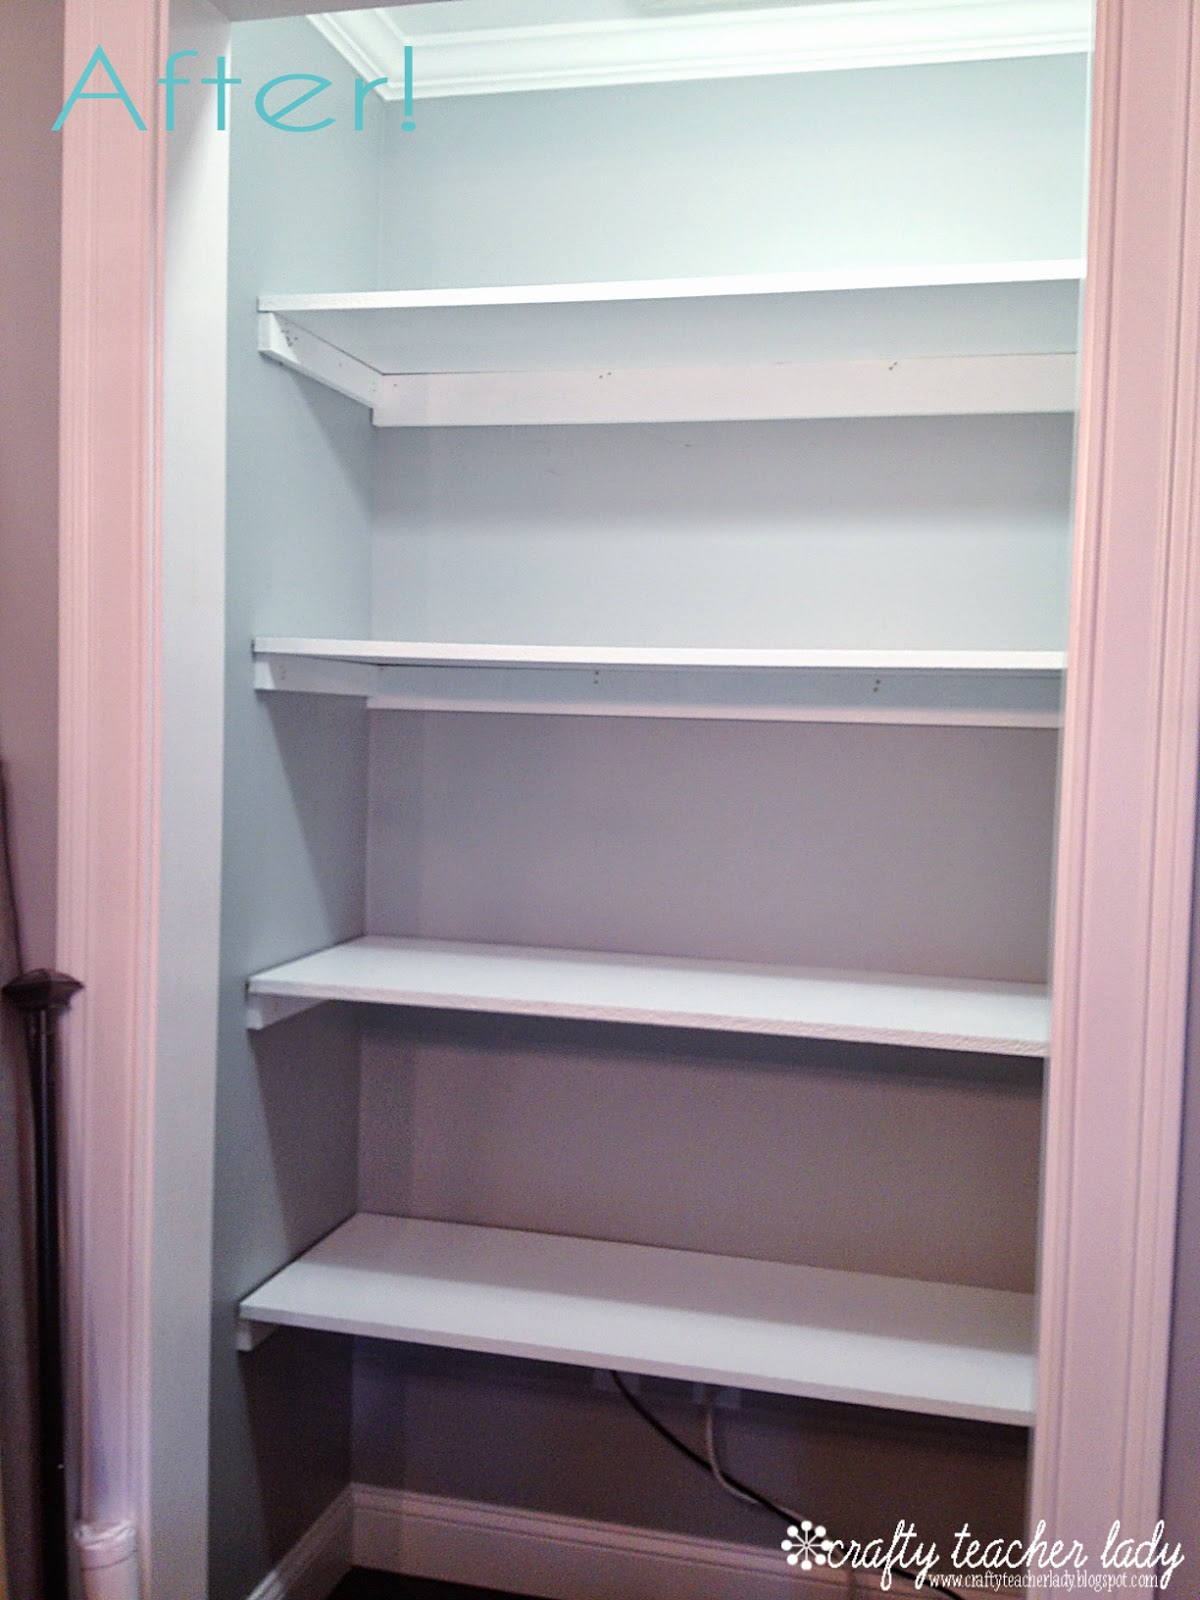 pin ideas closet easy nice diy shelves affordable wood kni and